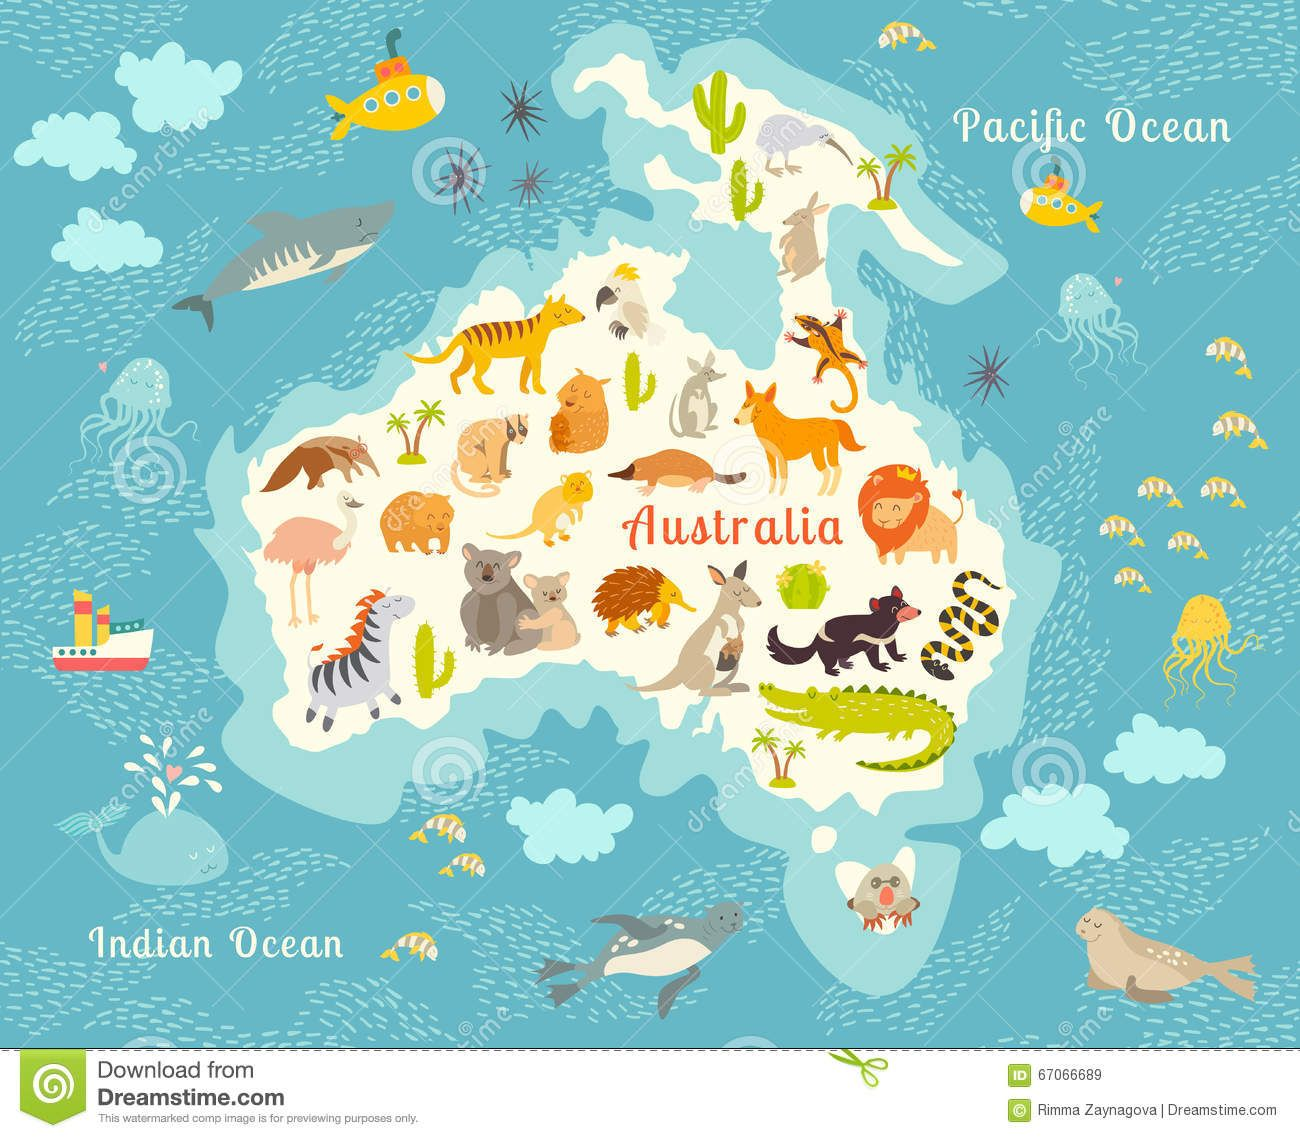 Animals world map australia download from over 45 million high animals world map australia download from over 45 million high quality stock photos gumiabroncs Image collections